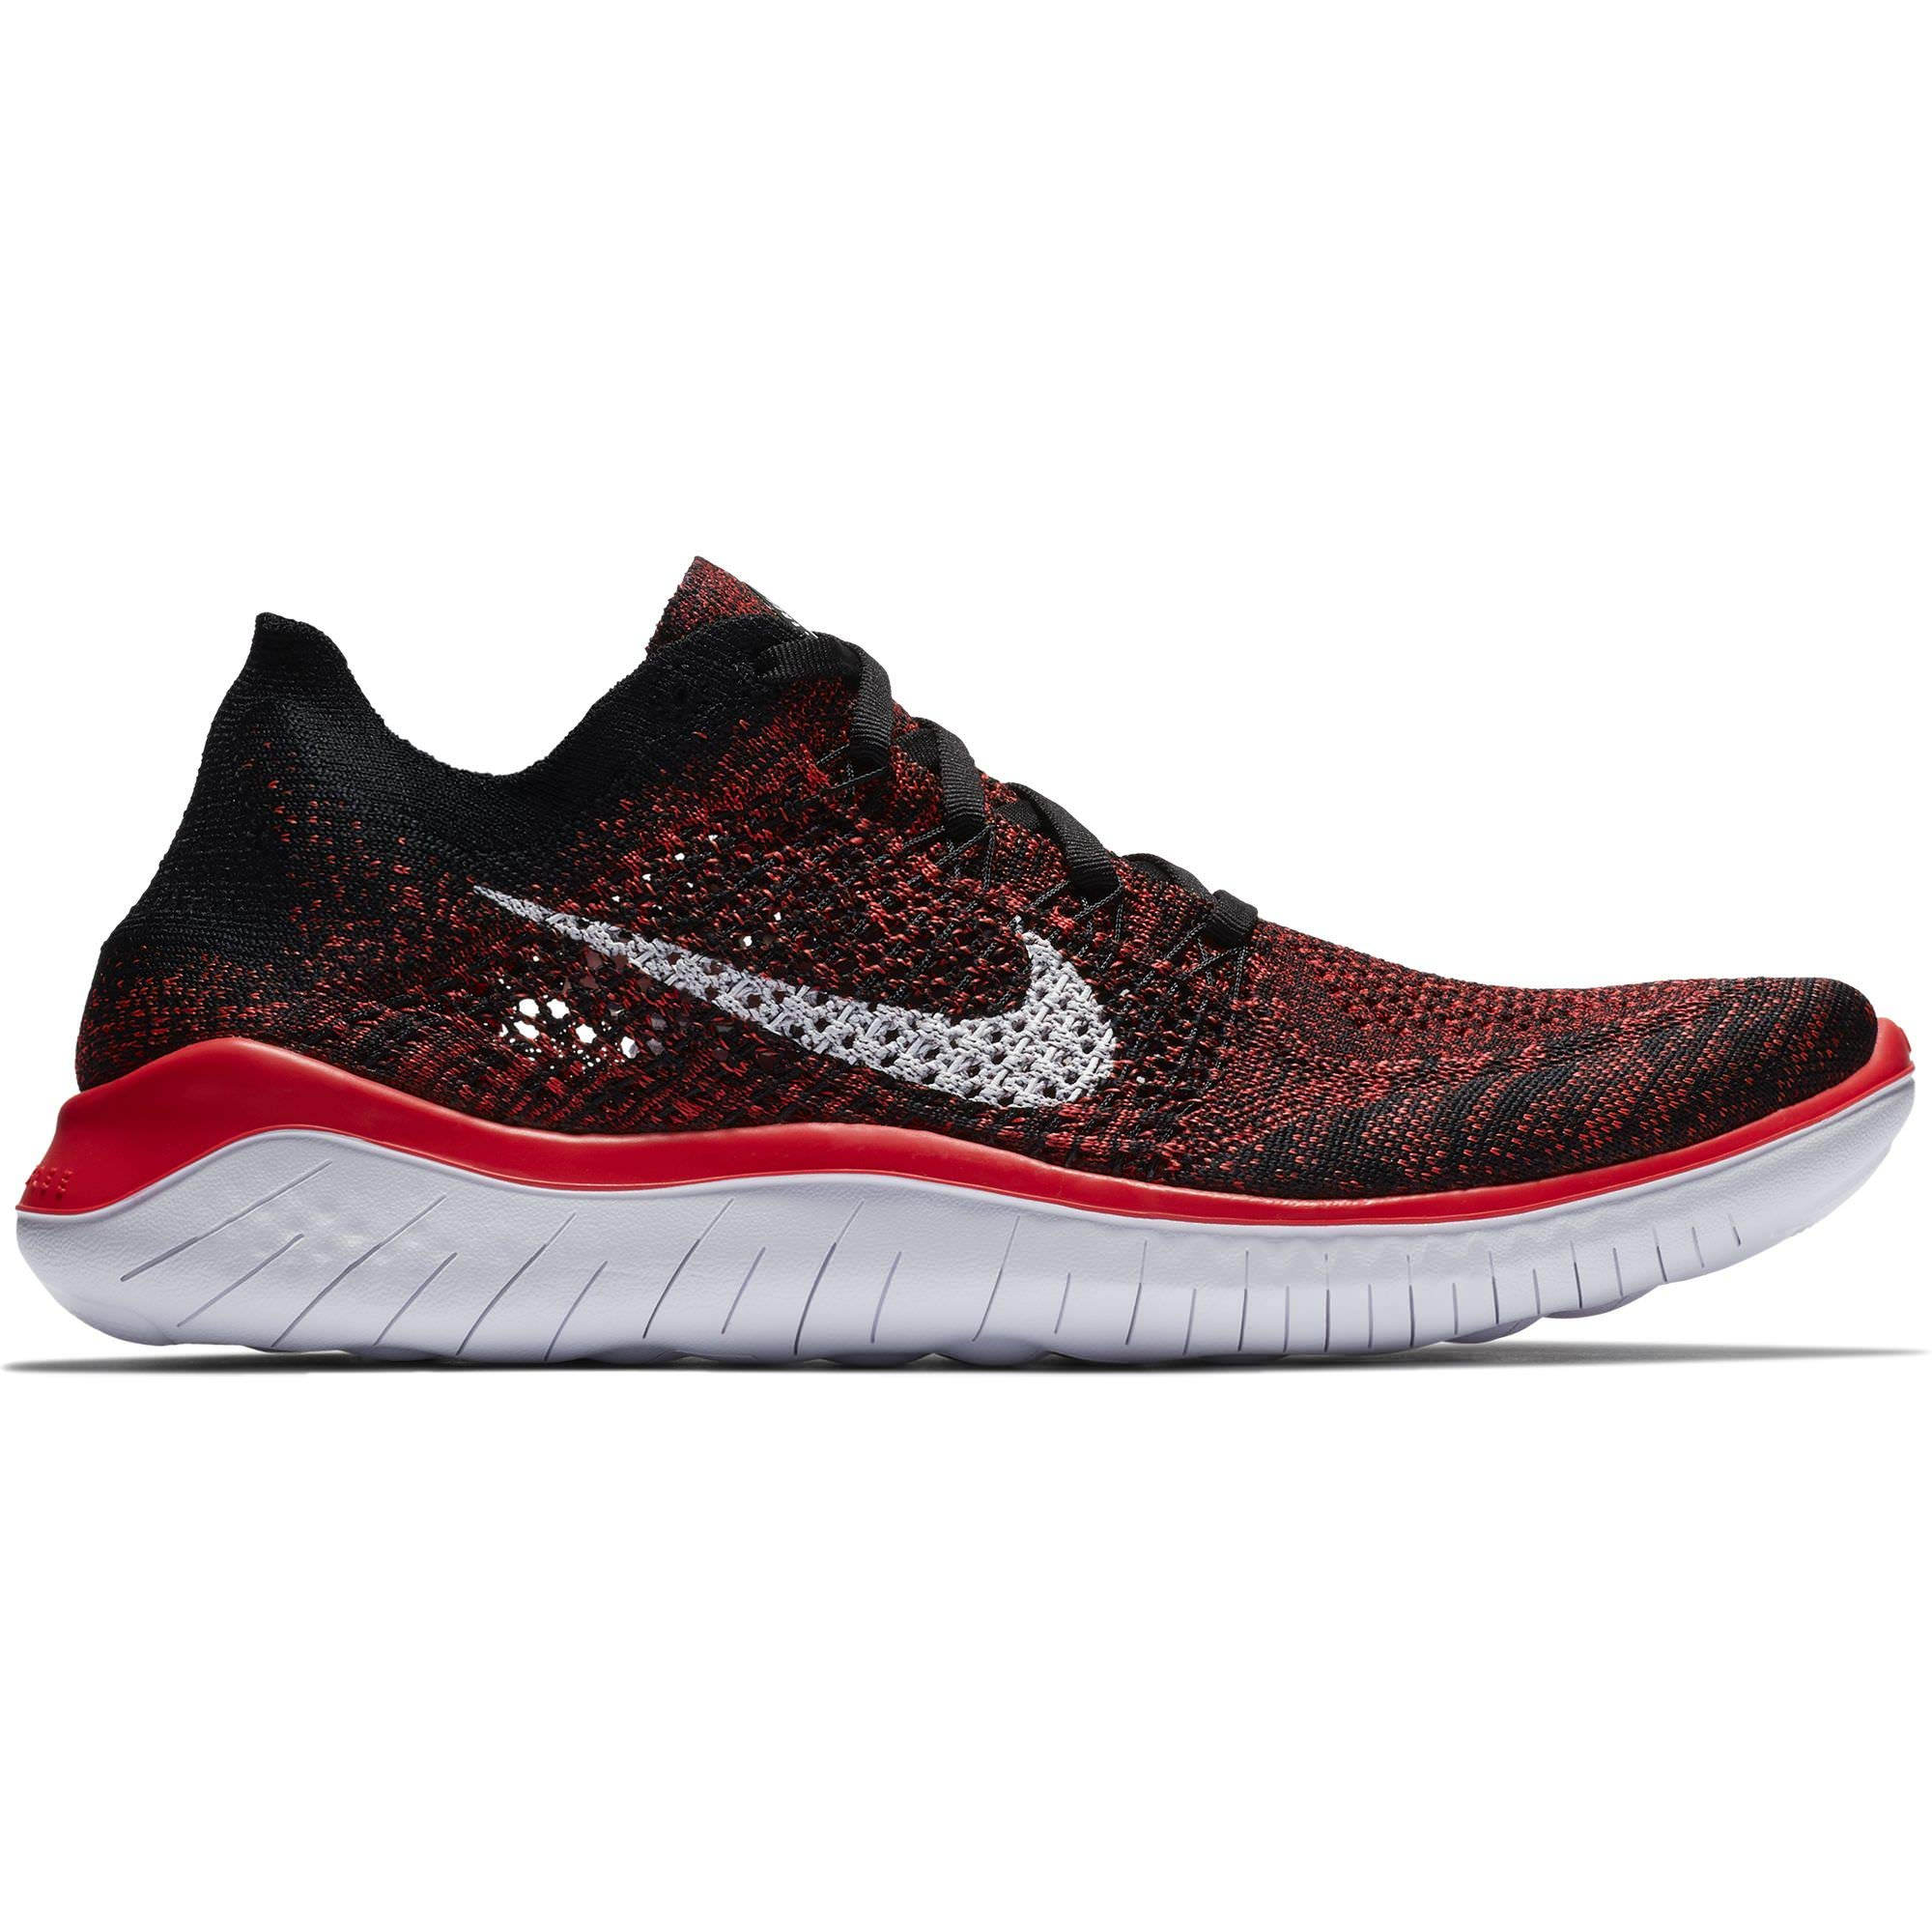 020a540d369c Galleon - Nike Men s Free RN Flyknit 2018 Bright Crimson White-Black 8.0